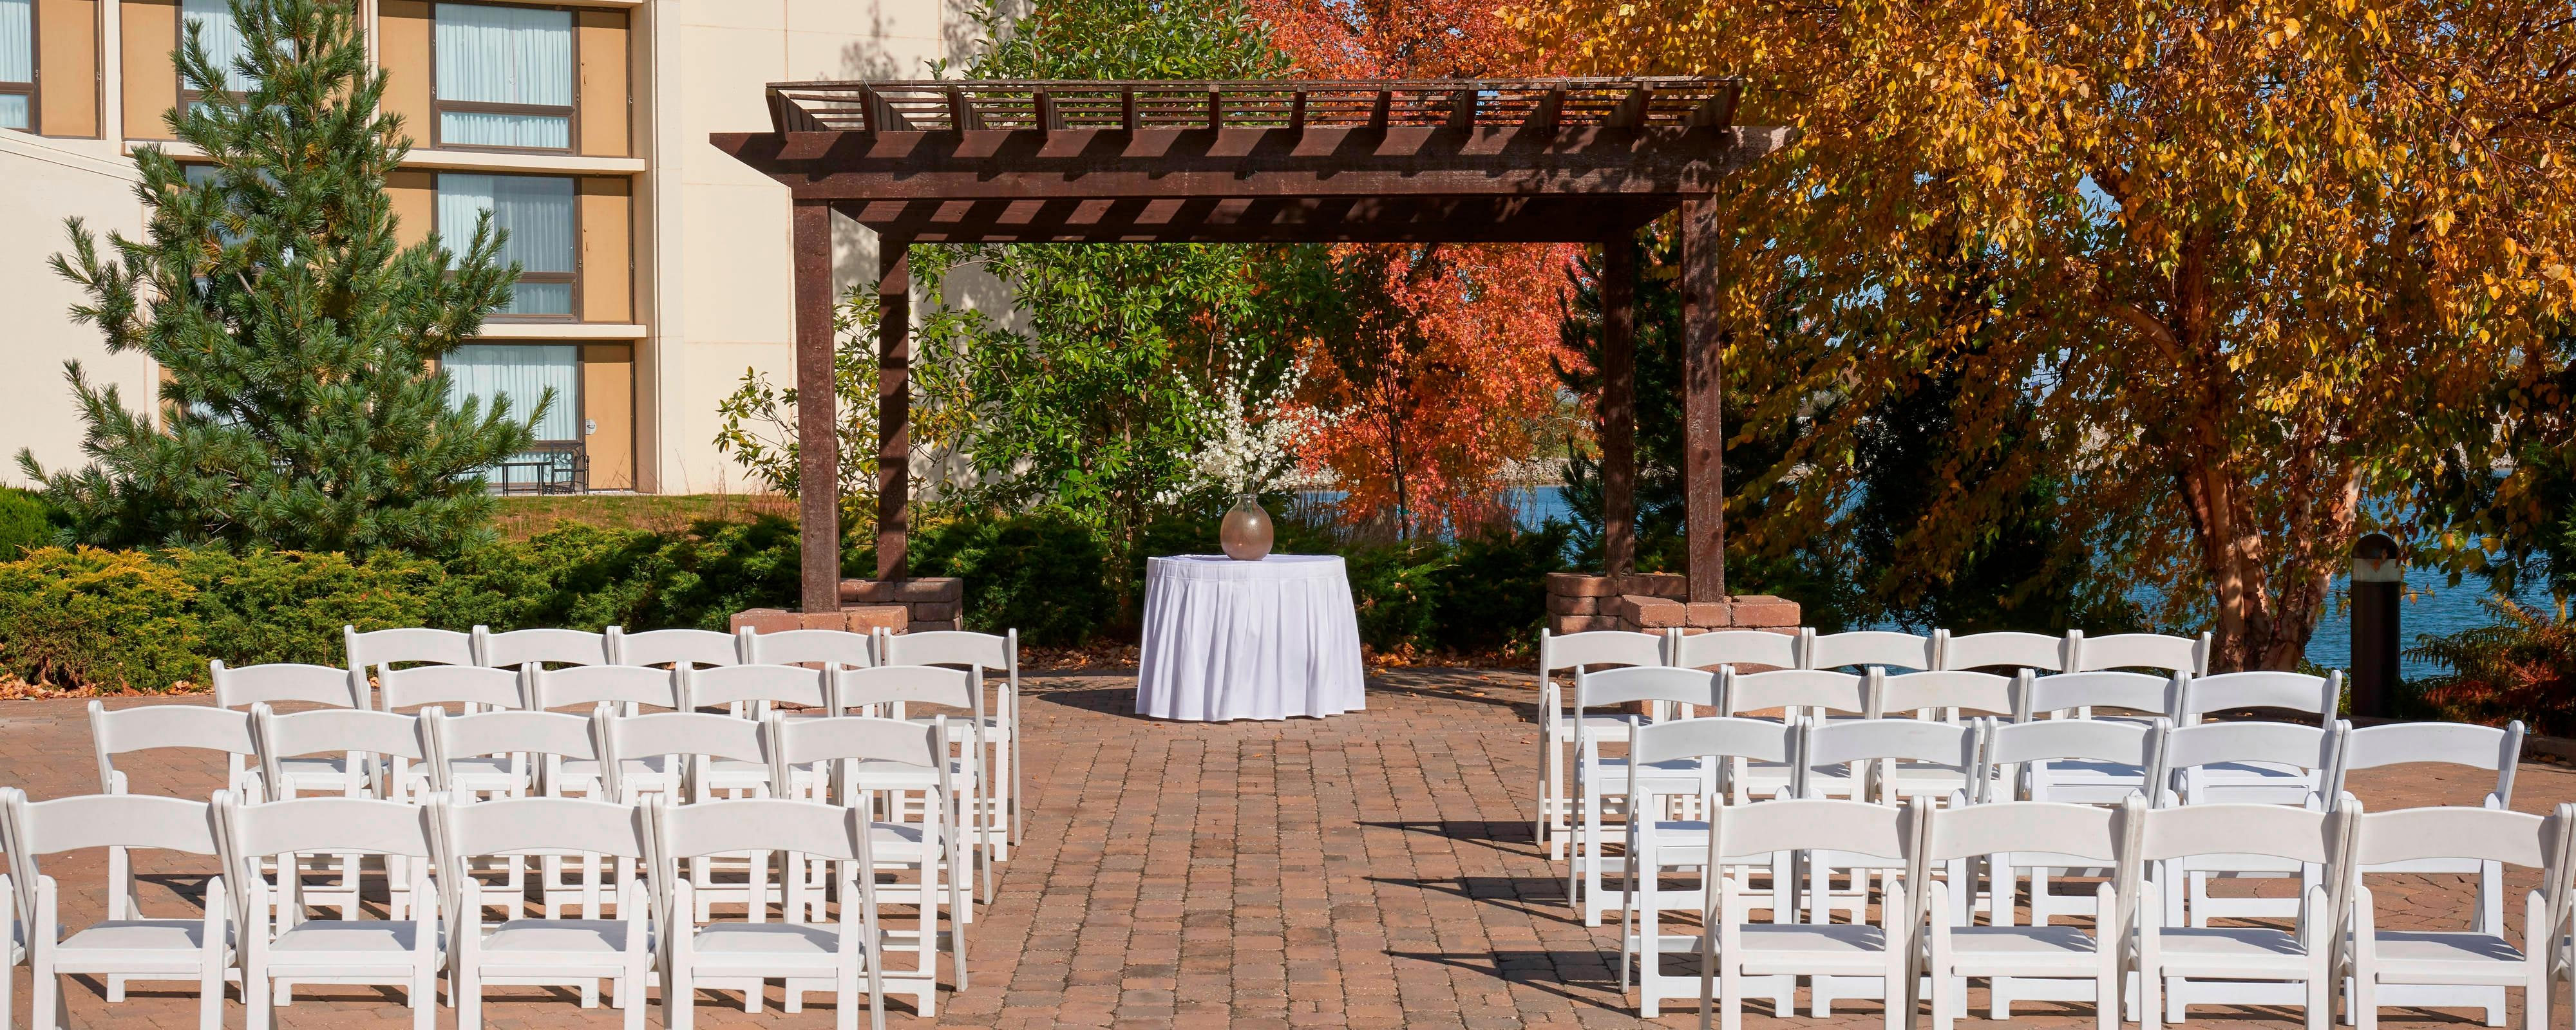 Unique Outdoor Wedding Venues Kansas City